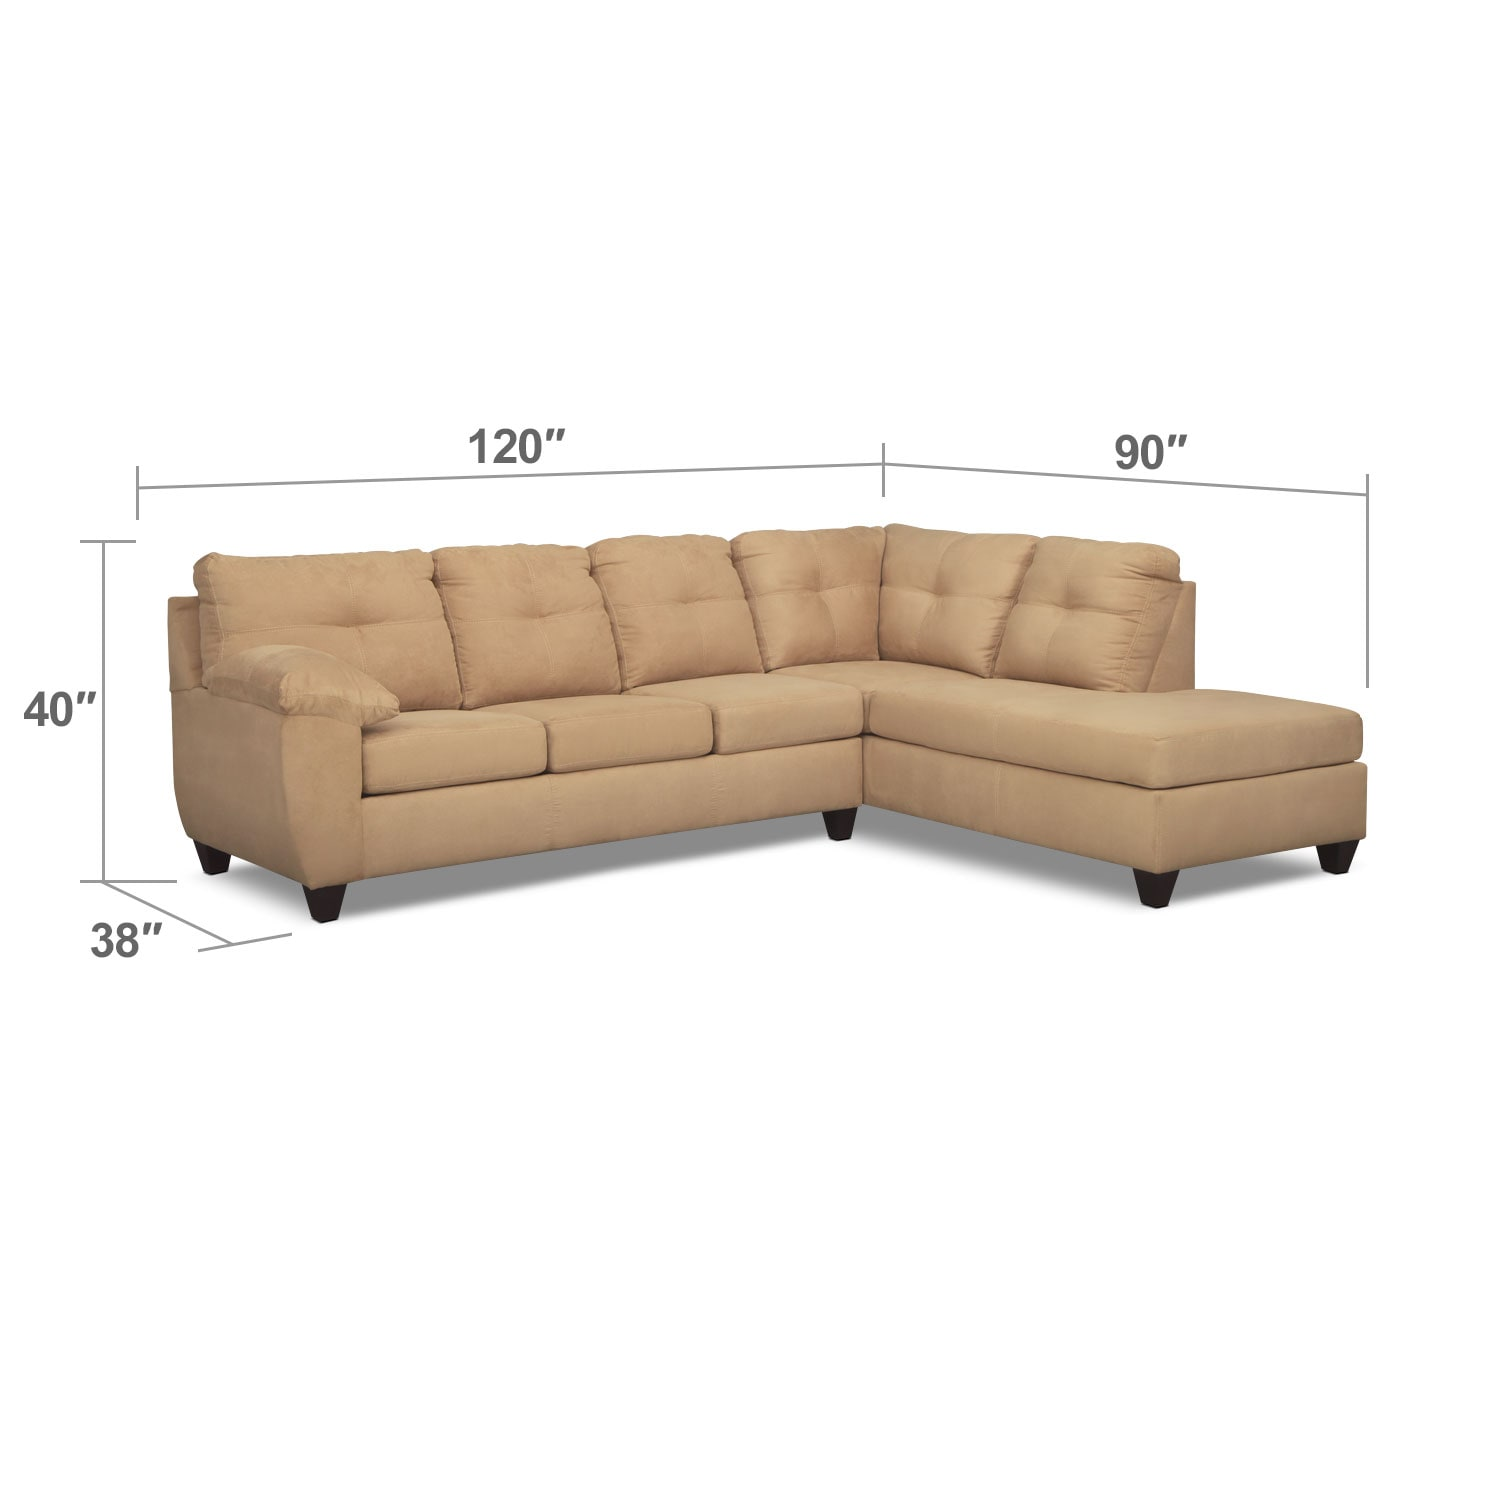 Living Room Furniture - Rialto Camel 2 Pc. Innerspring Sleeper Sectional with Right-Facing Chaise